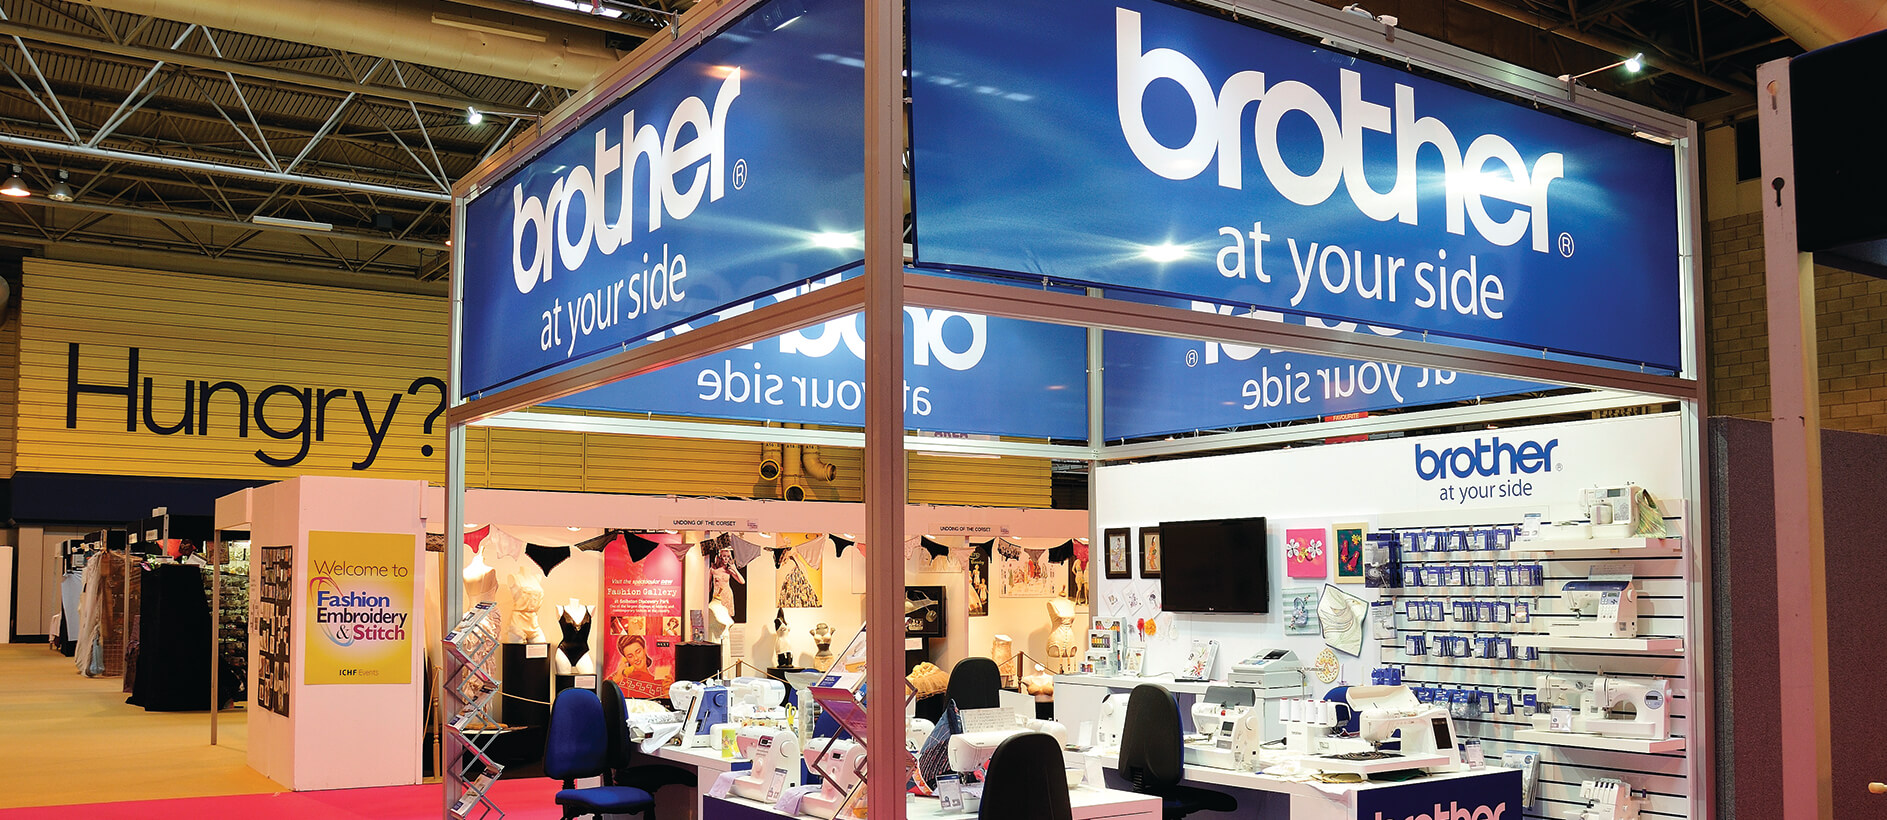 Exhibition stand for Brother printing products